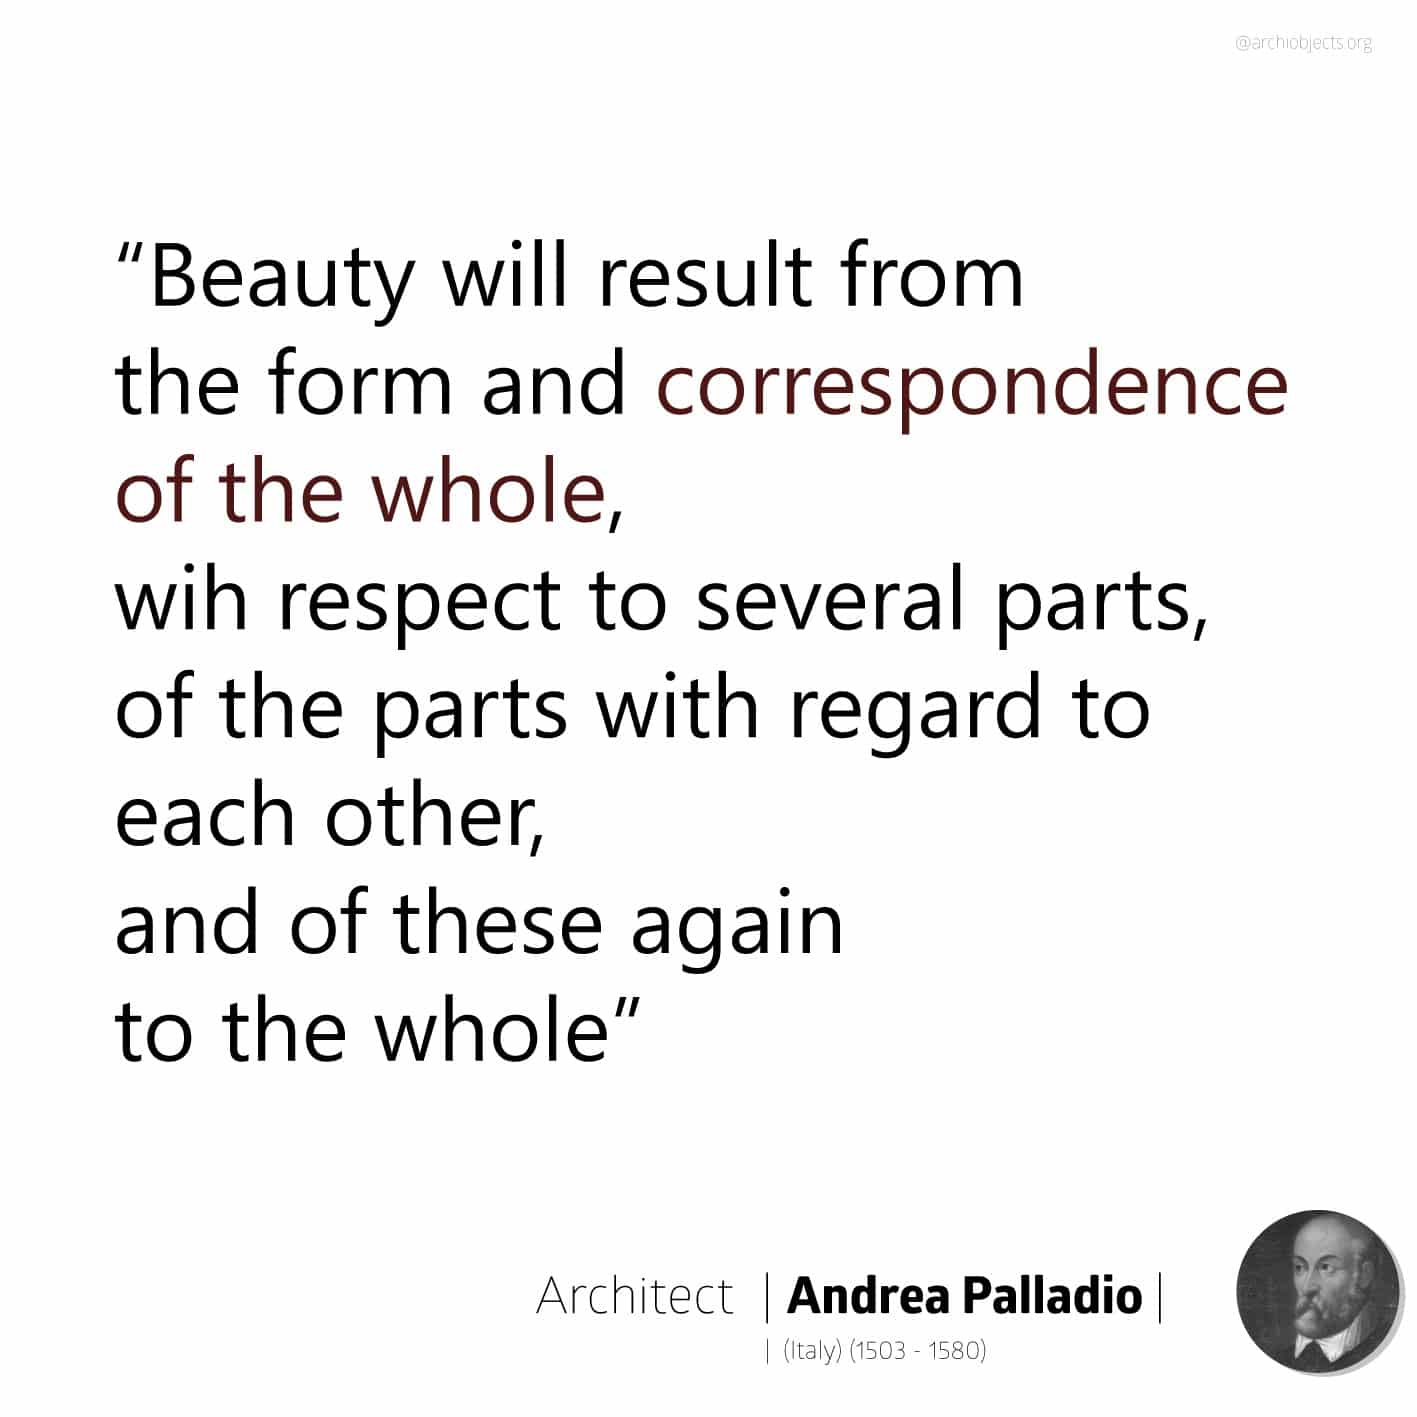 andrea palladio quote